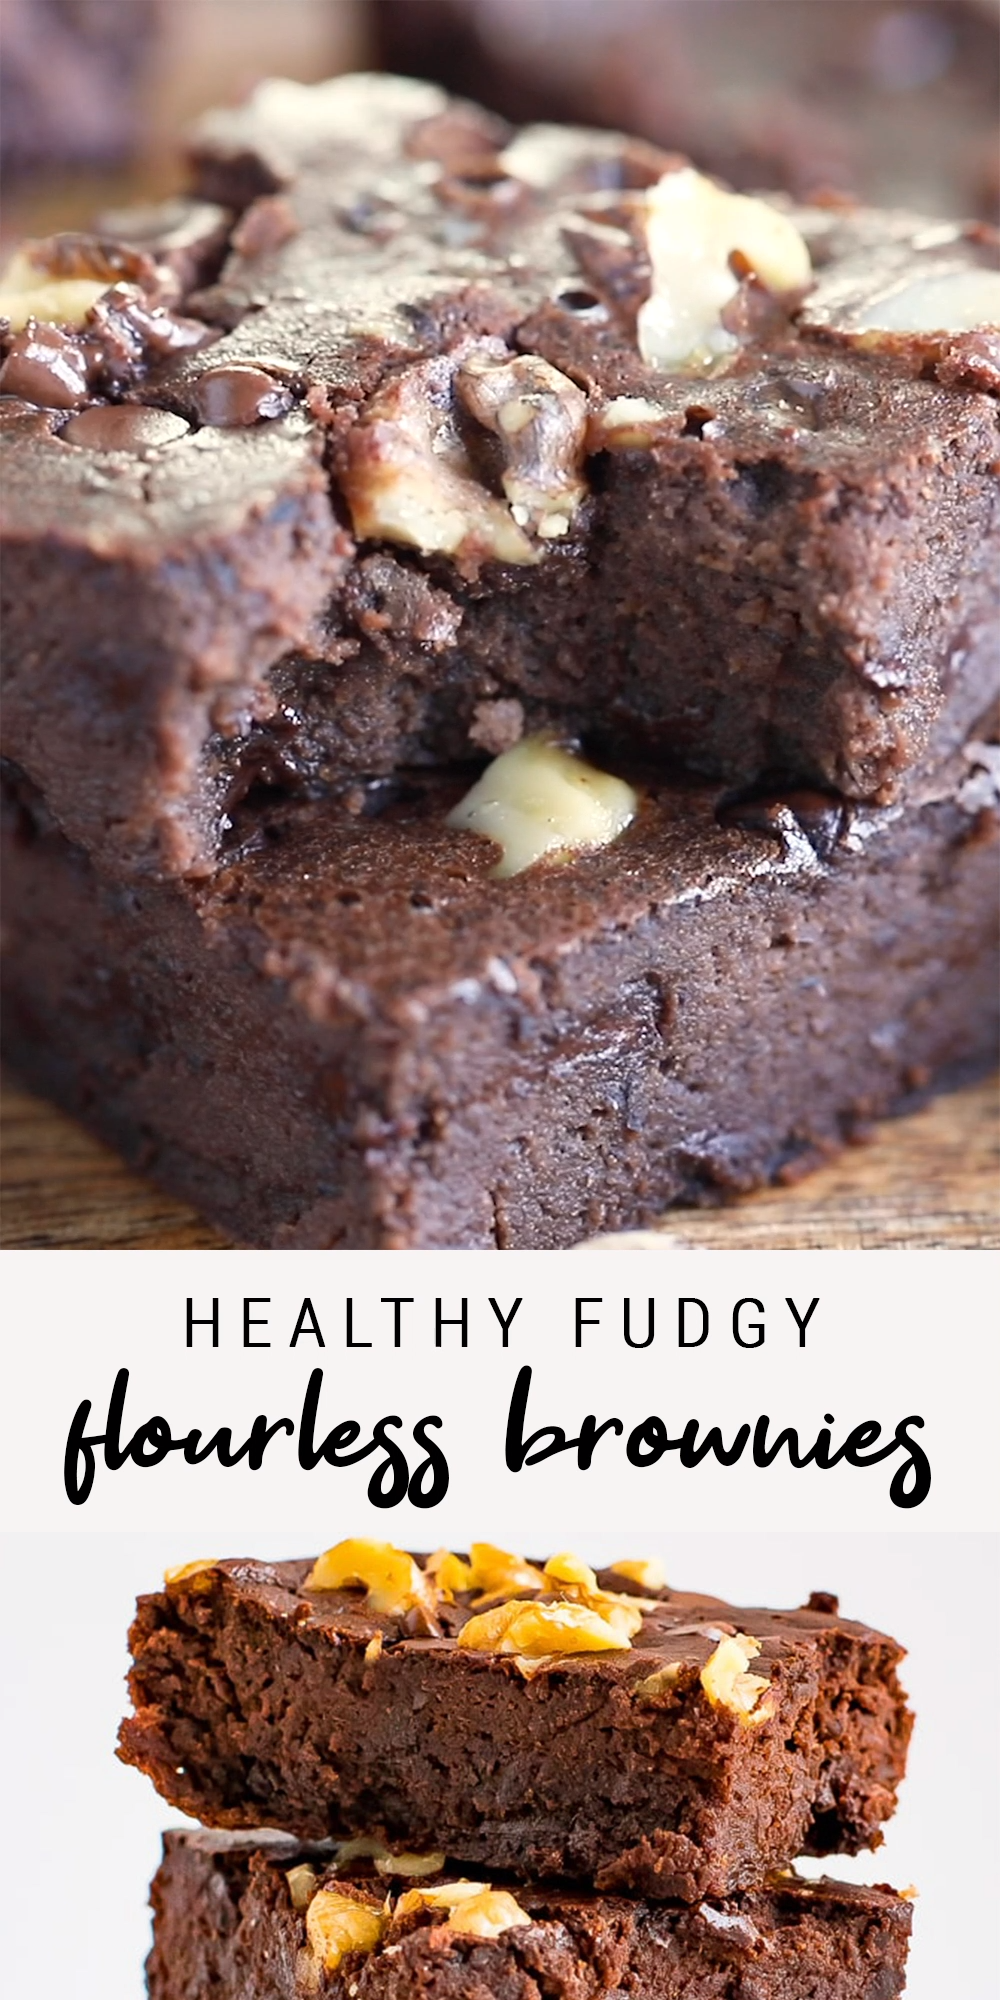 Photo of Healthy Fudgy Flourless Brownies | Easy Glute | Ketogene Rezepte Kuchen